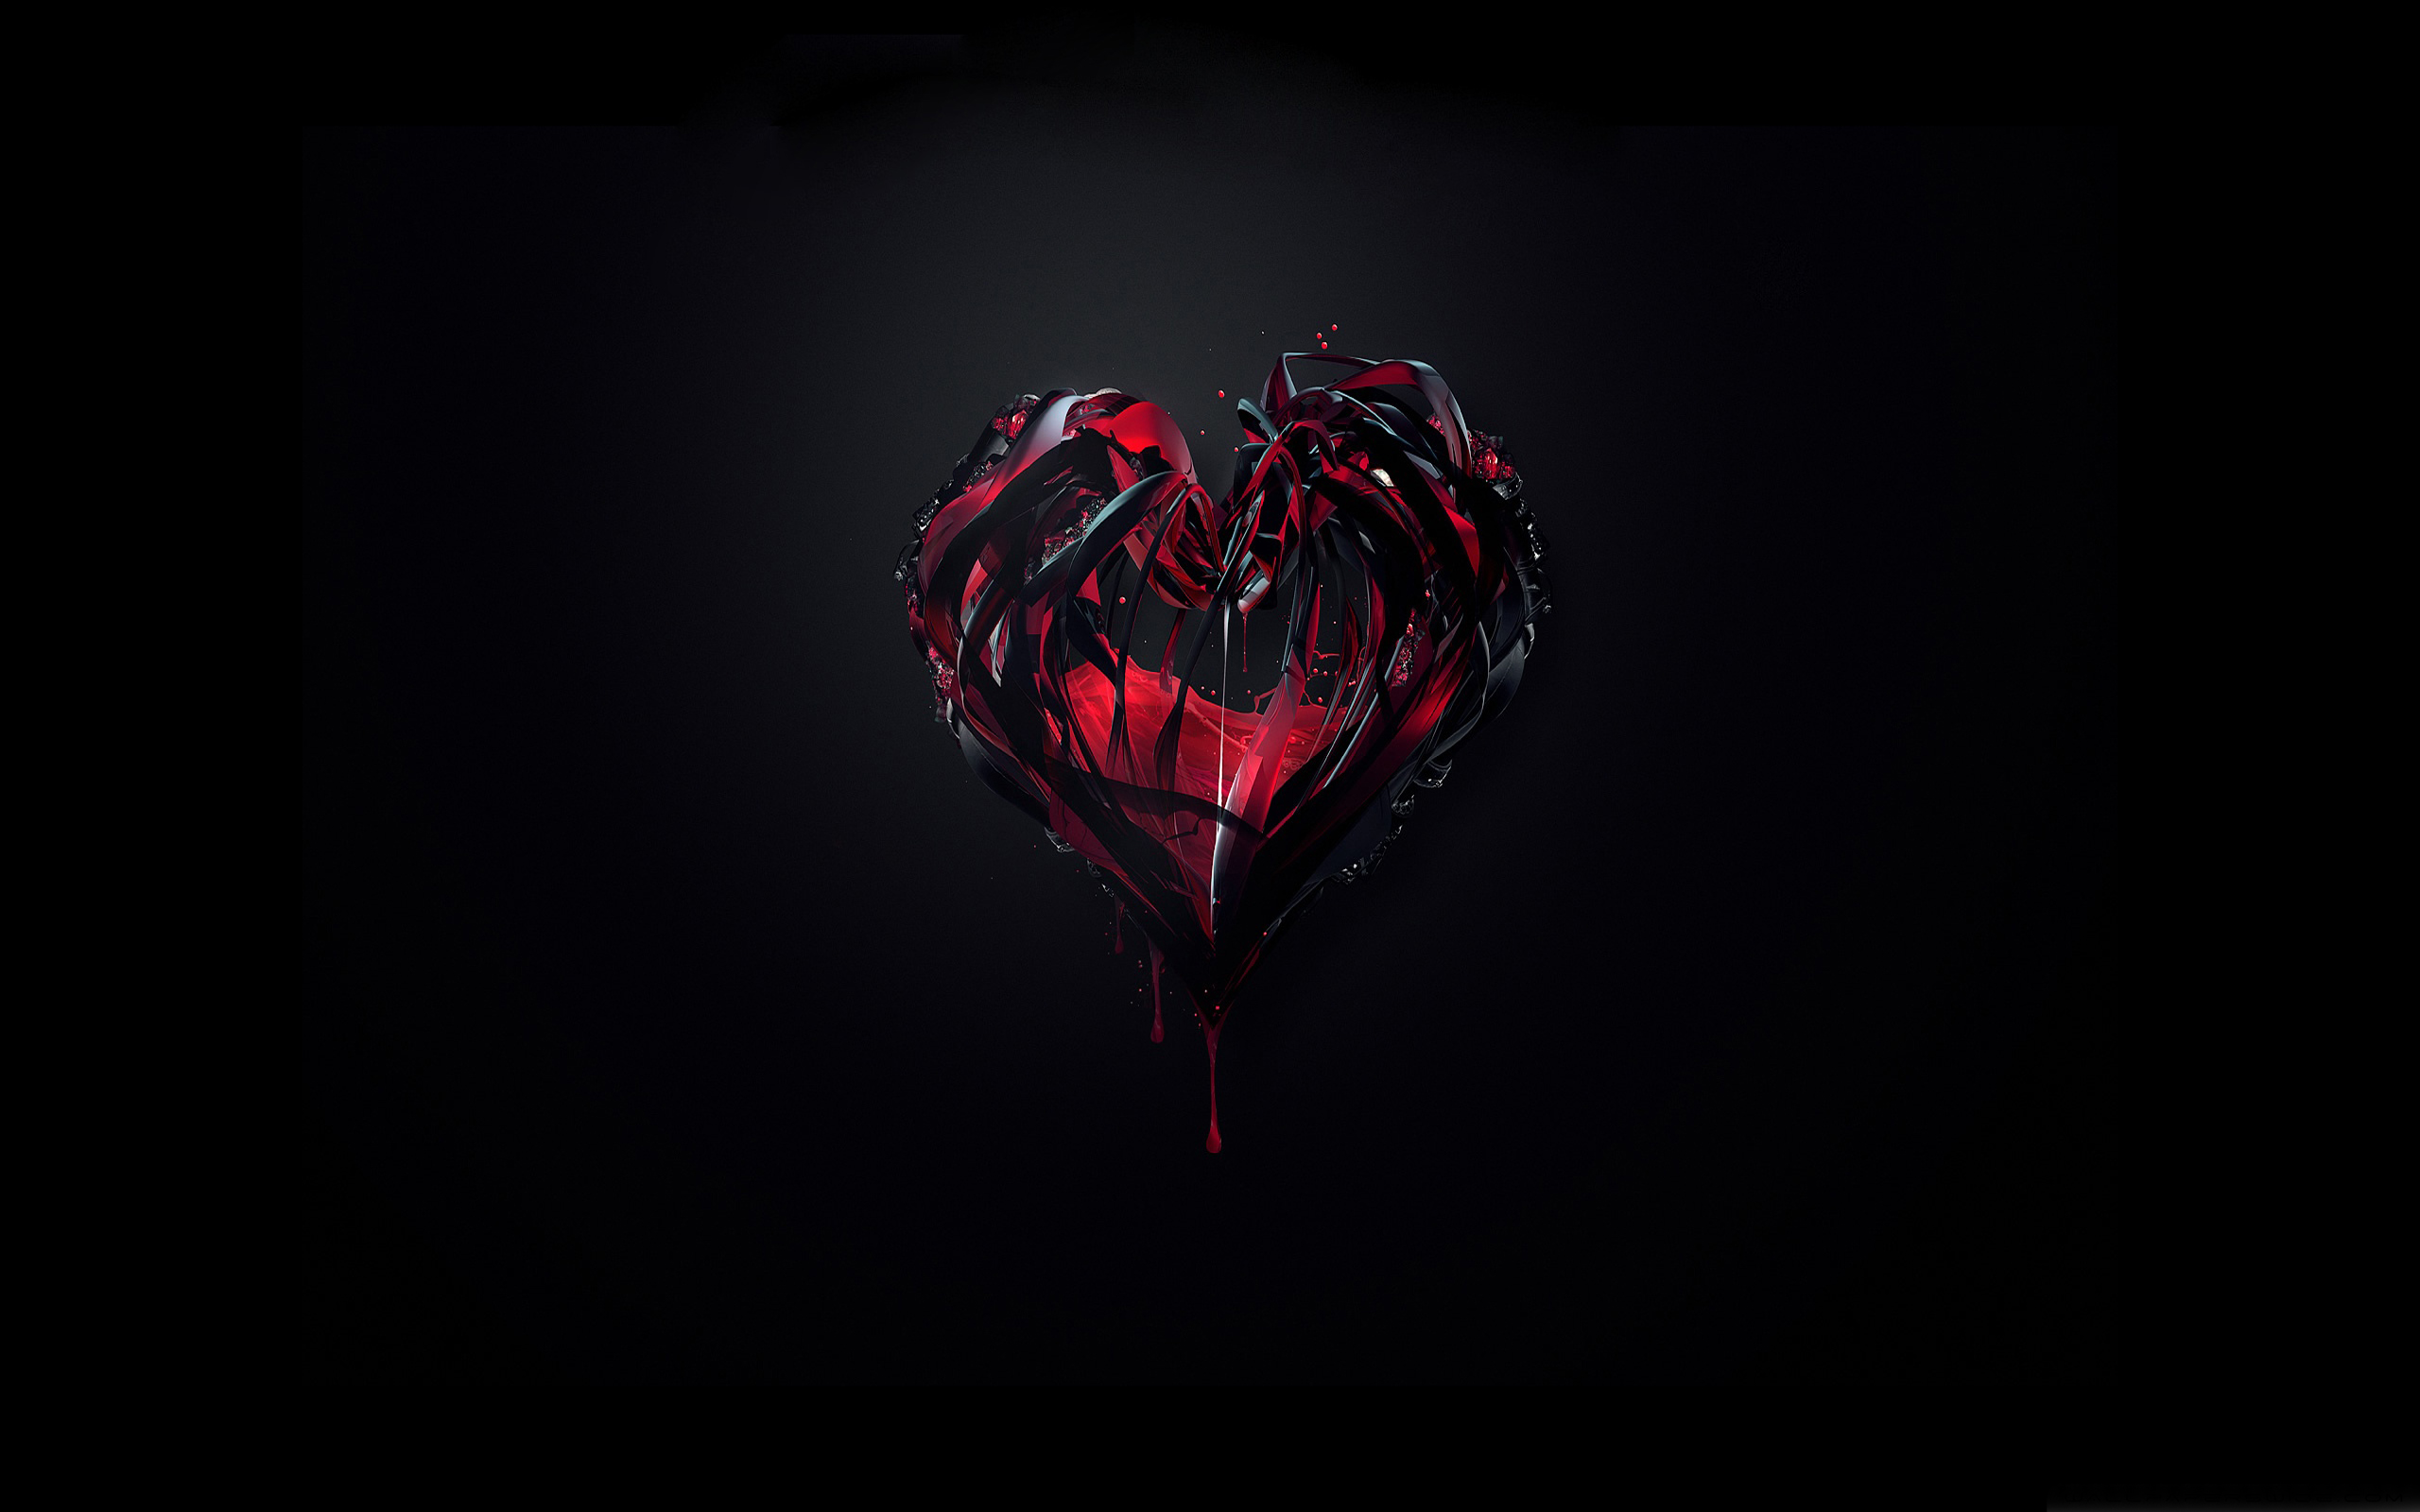 Broken Iphone Wallpaper Bleeding Heart Wallpaper 2560x1600 Wallpapers13 Com